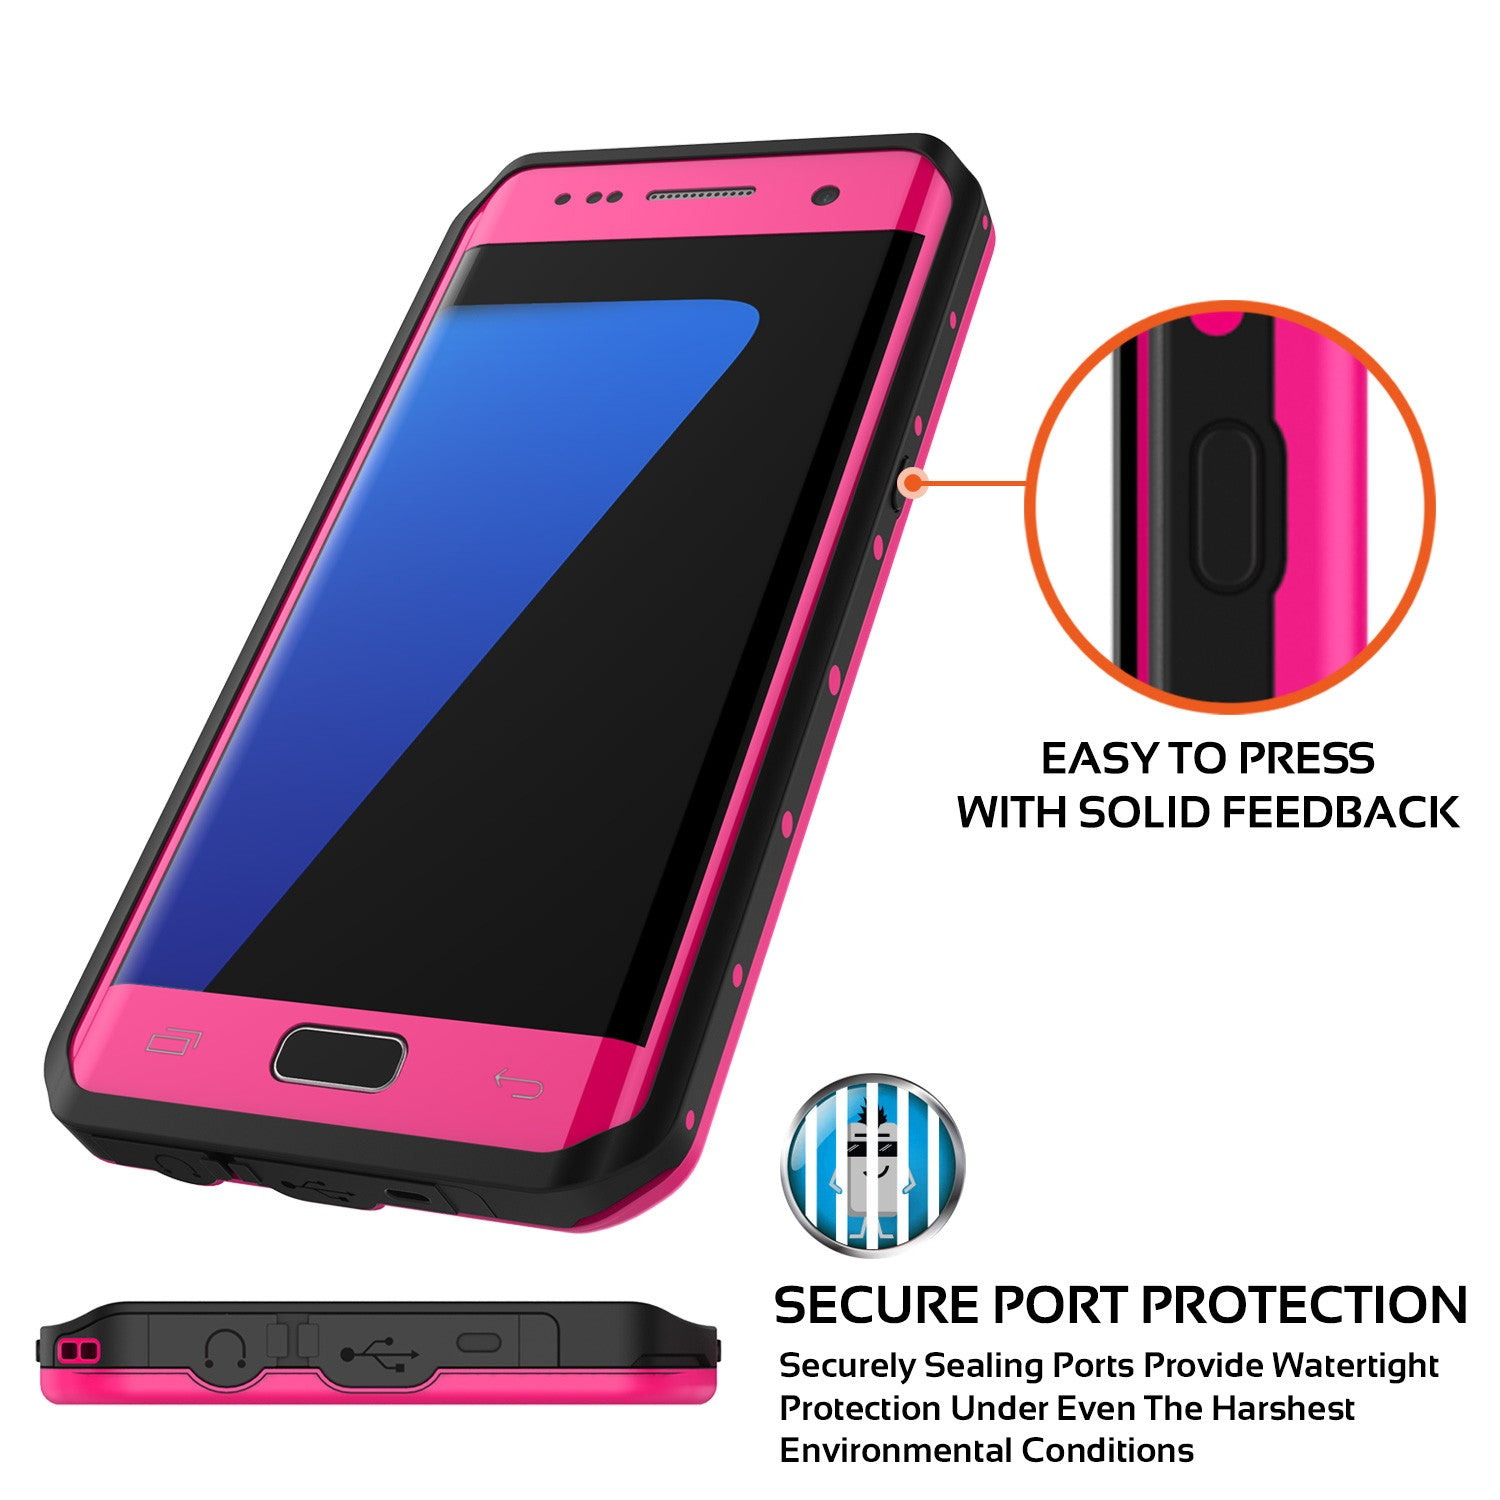 Galaxy S7 EDGE Waterproof Case PunkCase StudStar Pink Thin 6.6ft Underwater IP68 Shock/Snow Proof